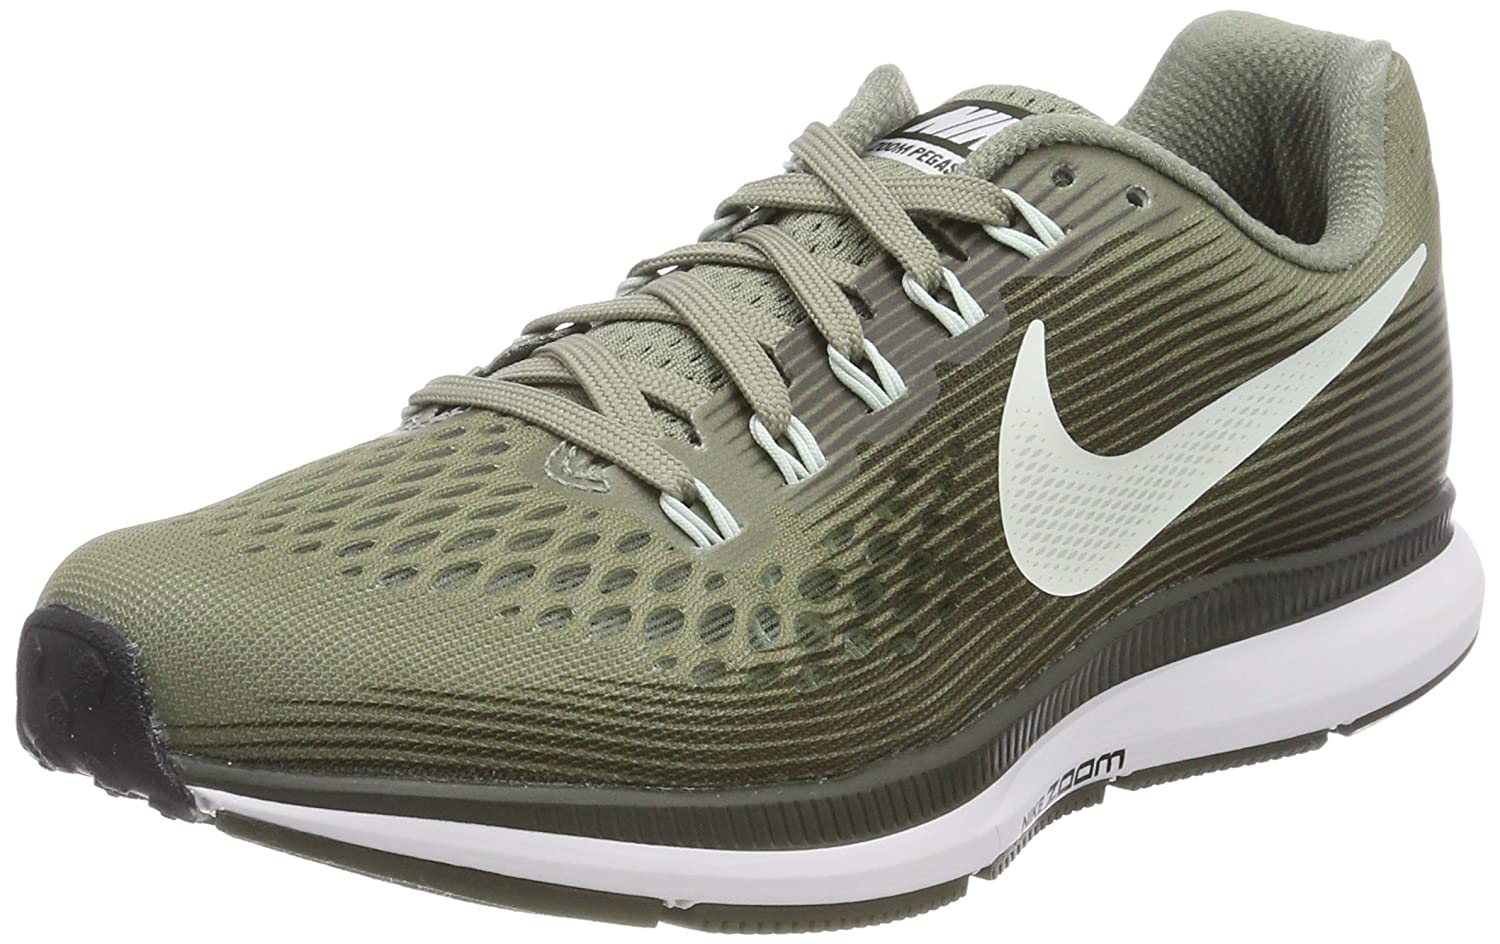 wholesale dealer 51dbe 4e4b0 Nike Women s WMNS Air Zoom Pegasus 34 Competition Running Shoes   Amazon.co.uk  Shoes   Bags